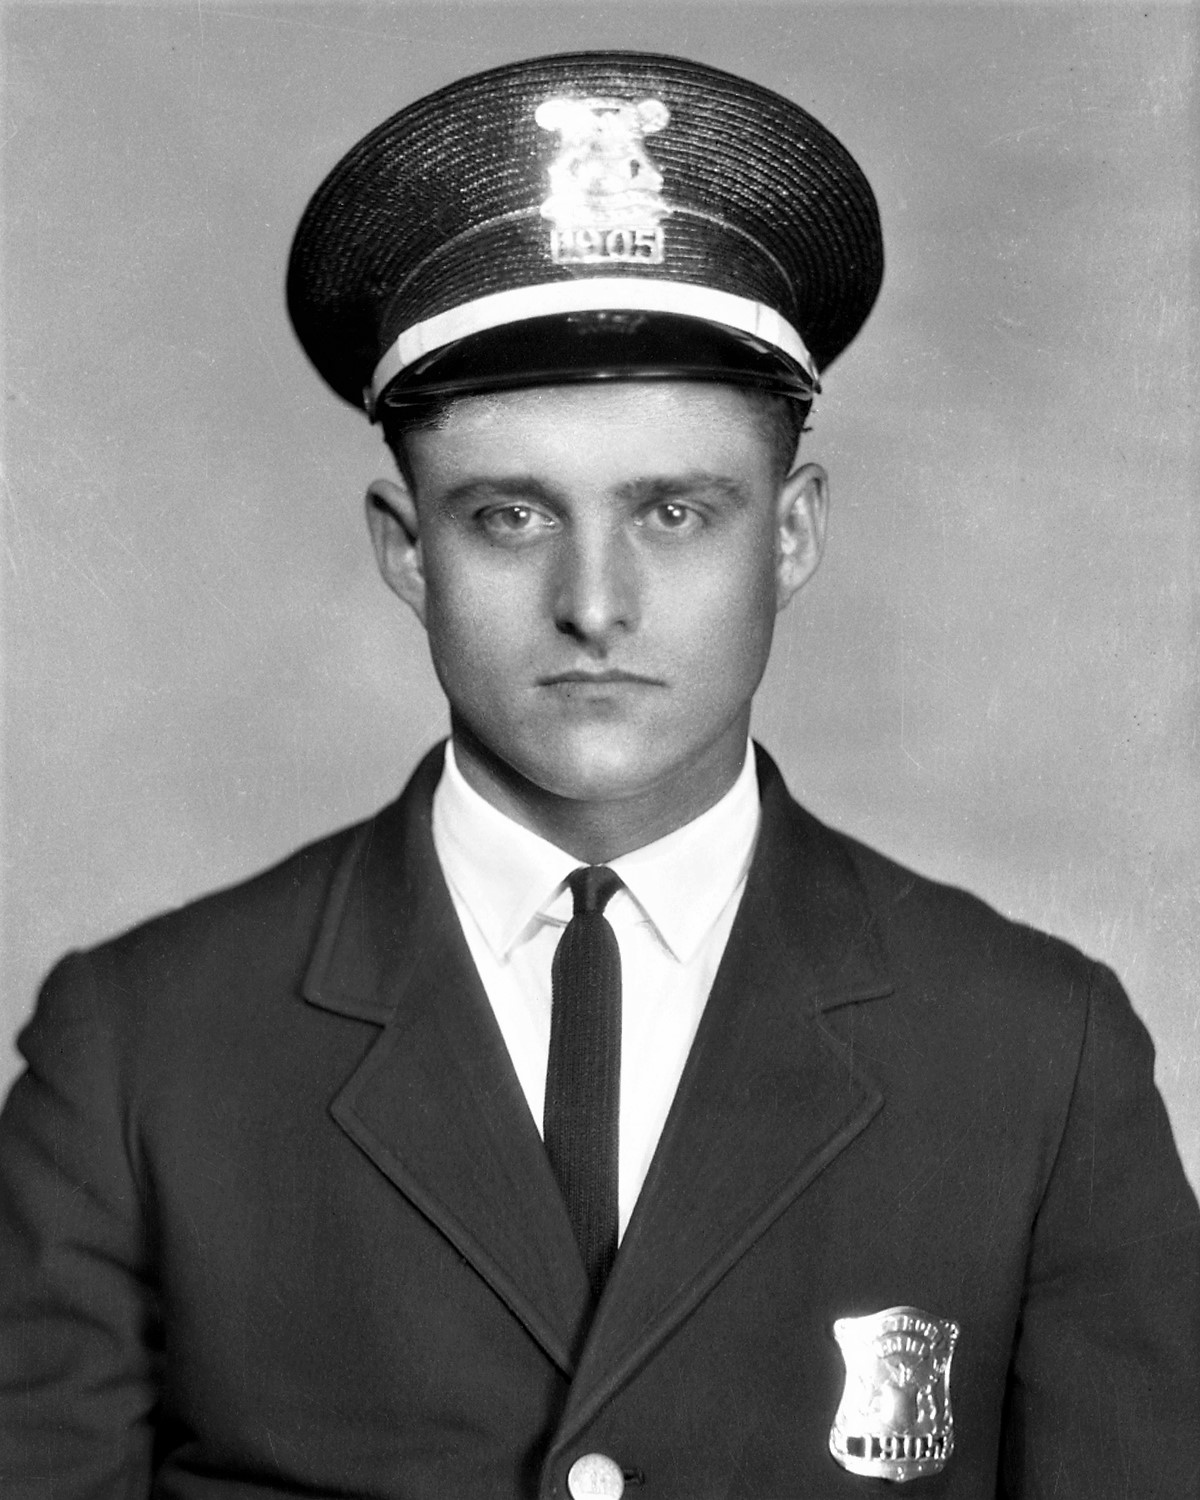 Police Officer Lloyd O. Schultz | Detroit Police Department, Michigan